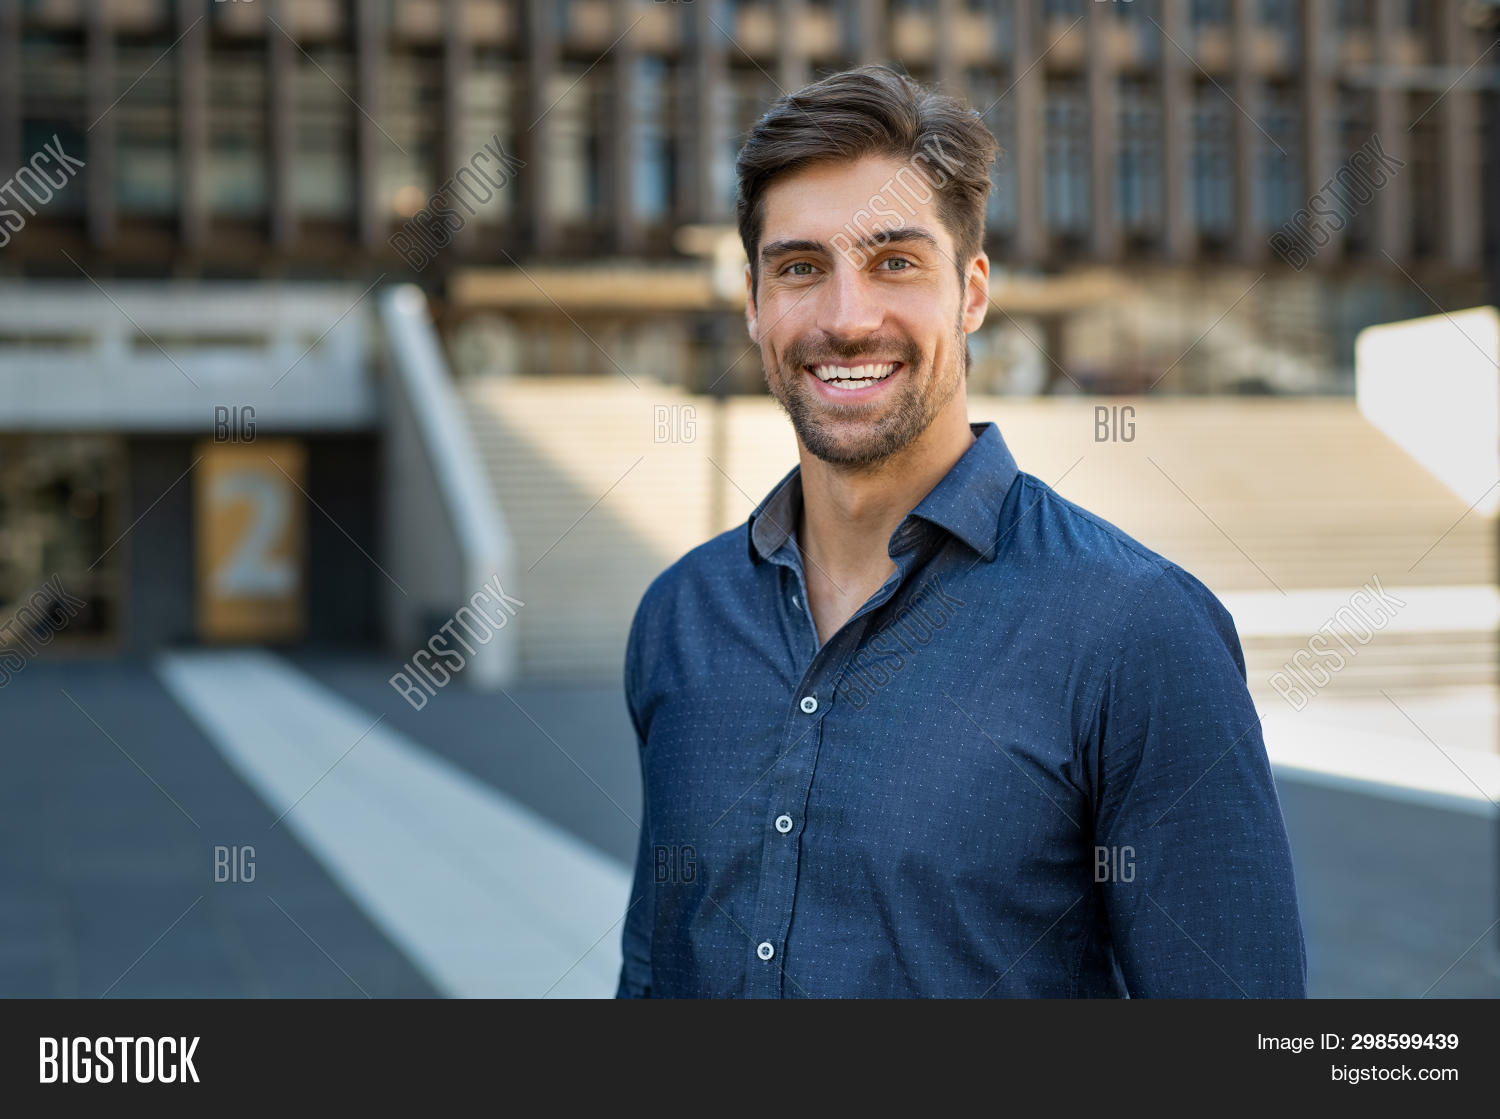 Portrait of happy young man in casual clothing looking at camera outdoor. Smiling man with beard fee